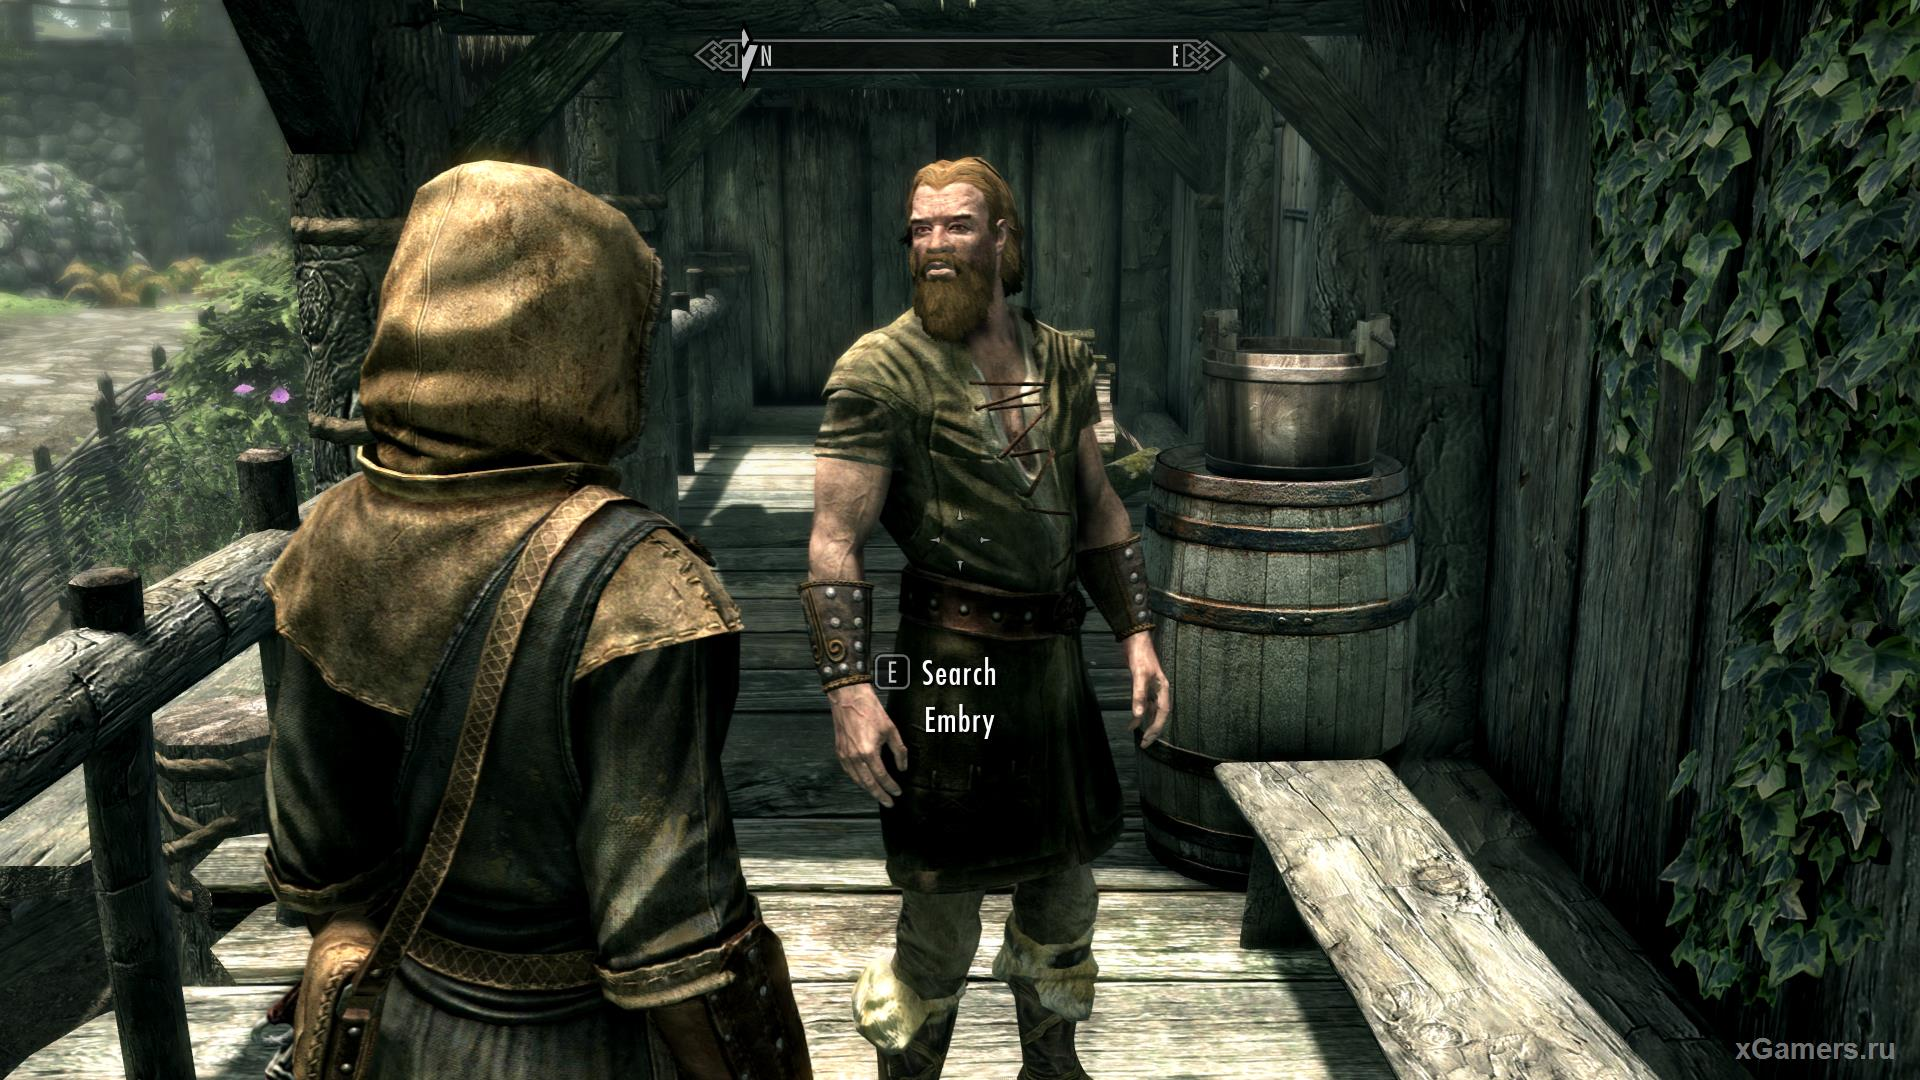 Resurrecting characters using a cheat in the game Skyrim